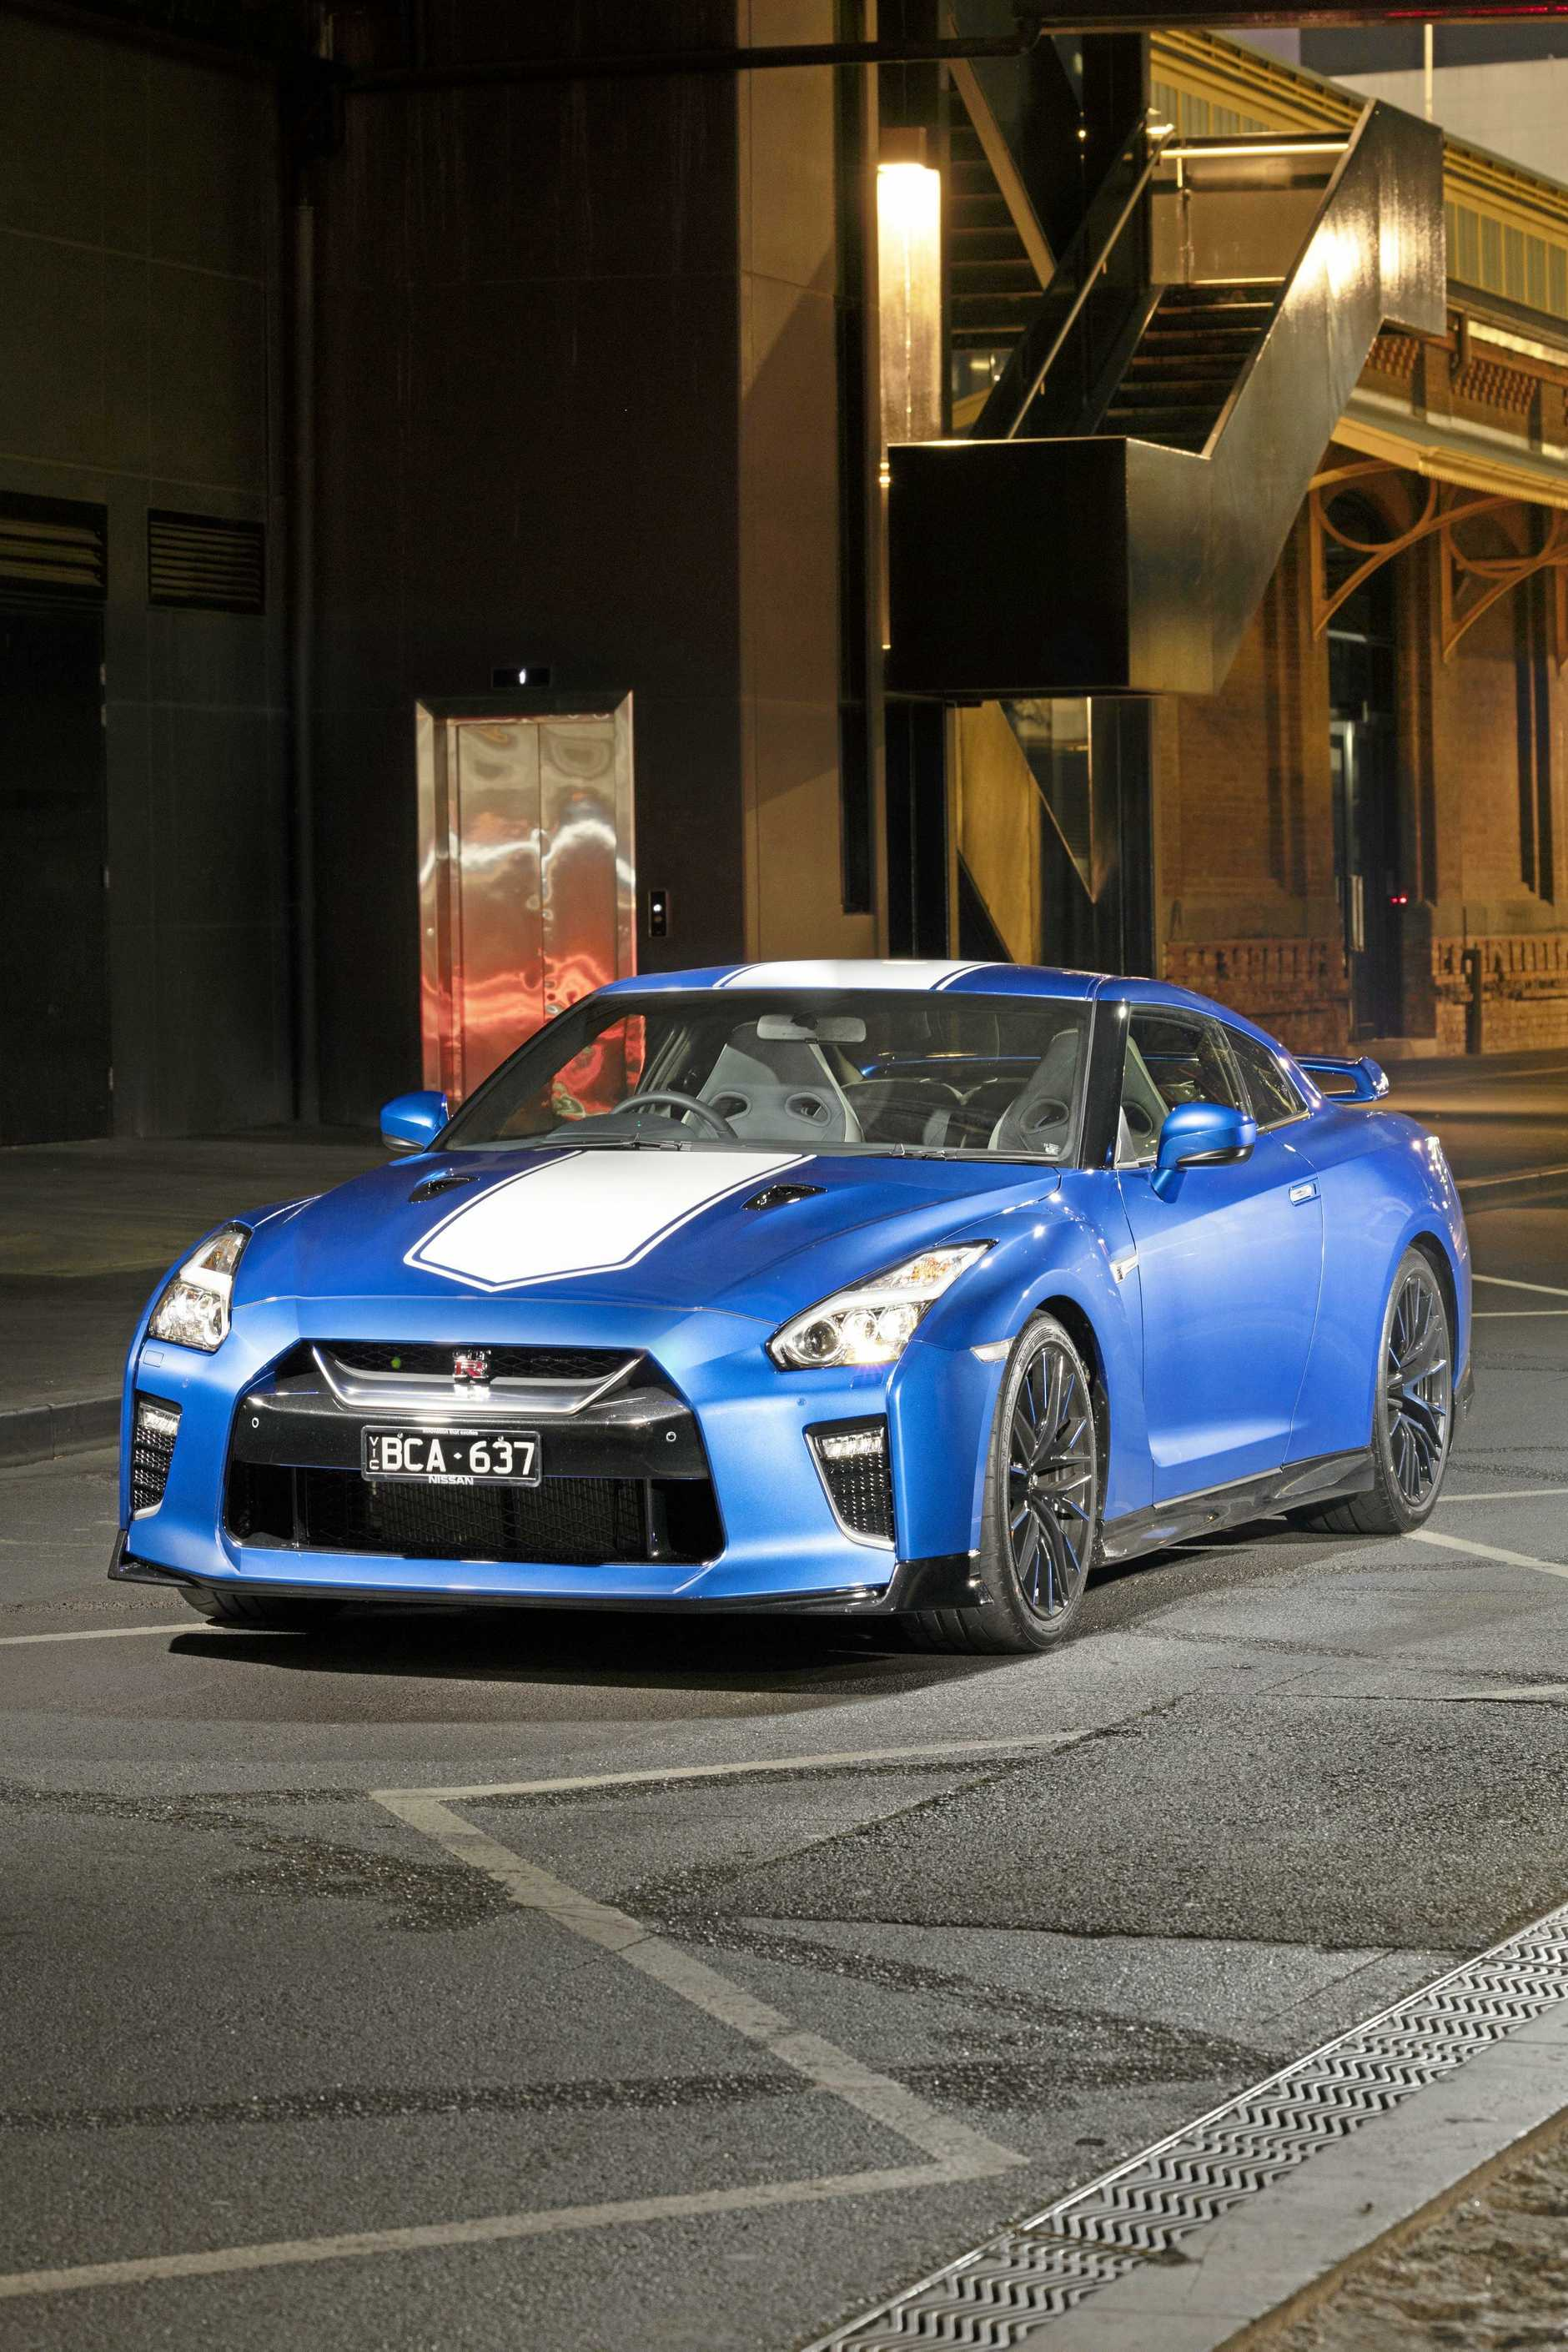 Thje 2020 model Nissan GT-R Premium Luxury 50th Anniversary.